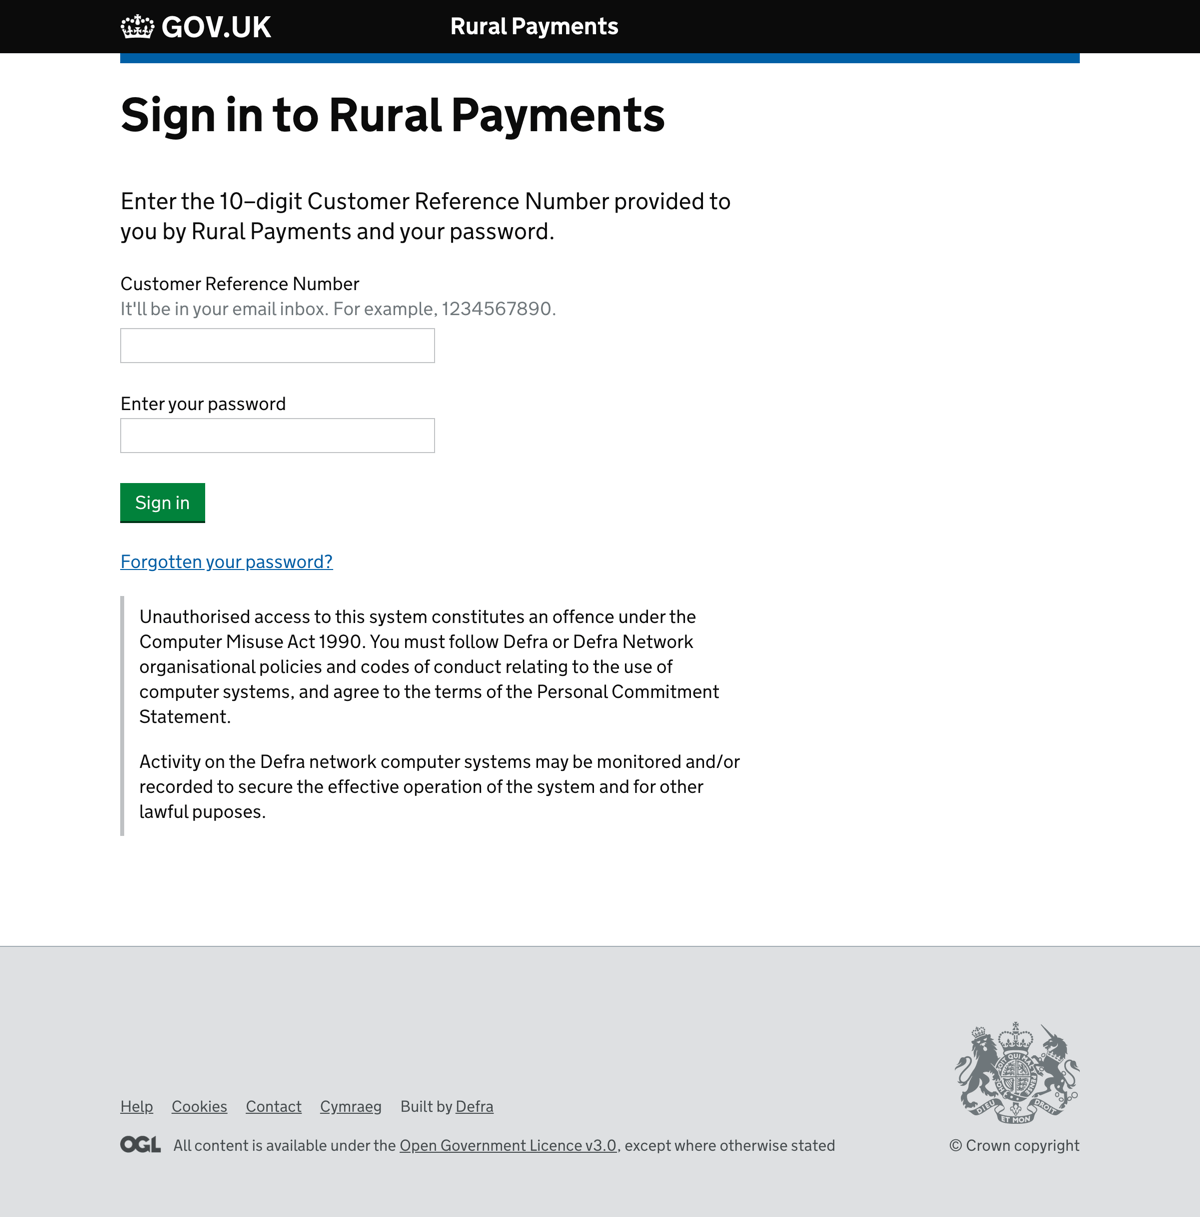 Rural Payments sign in screen